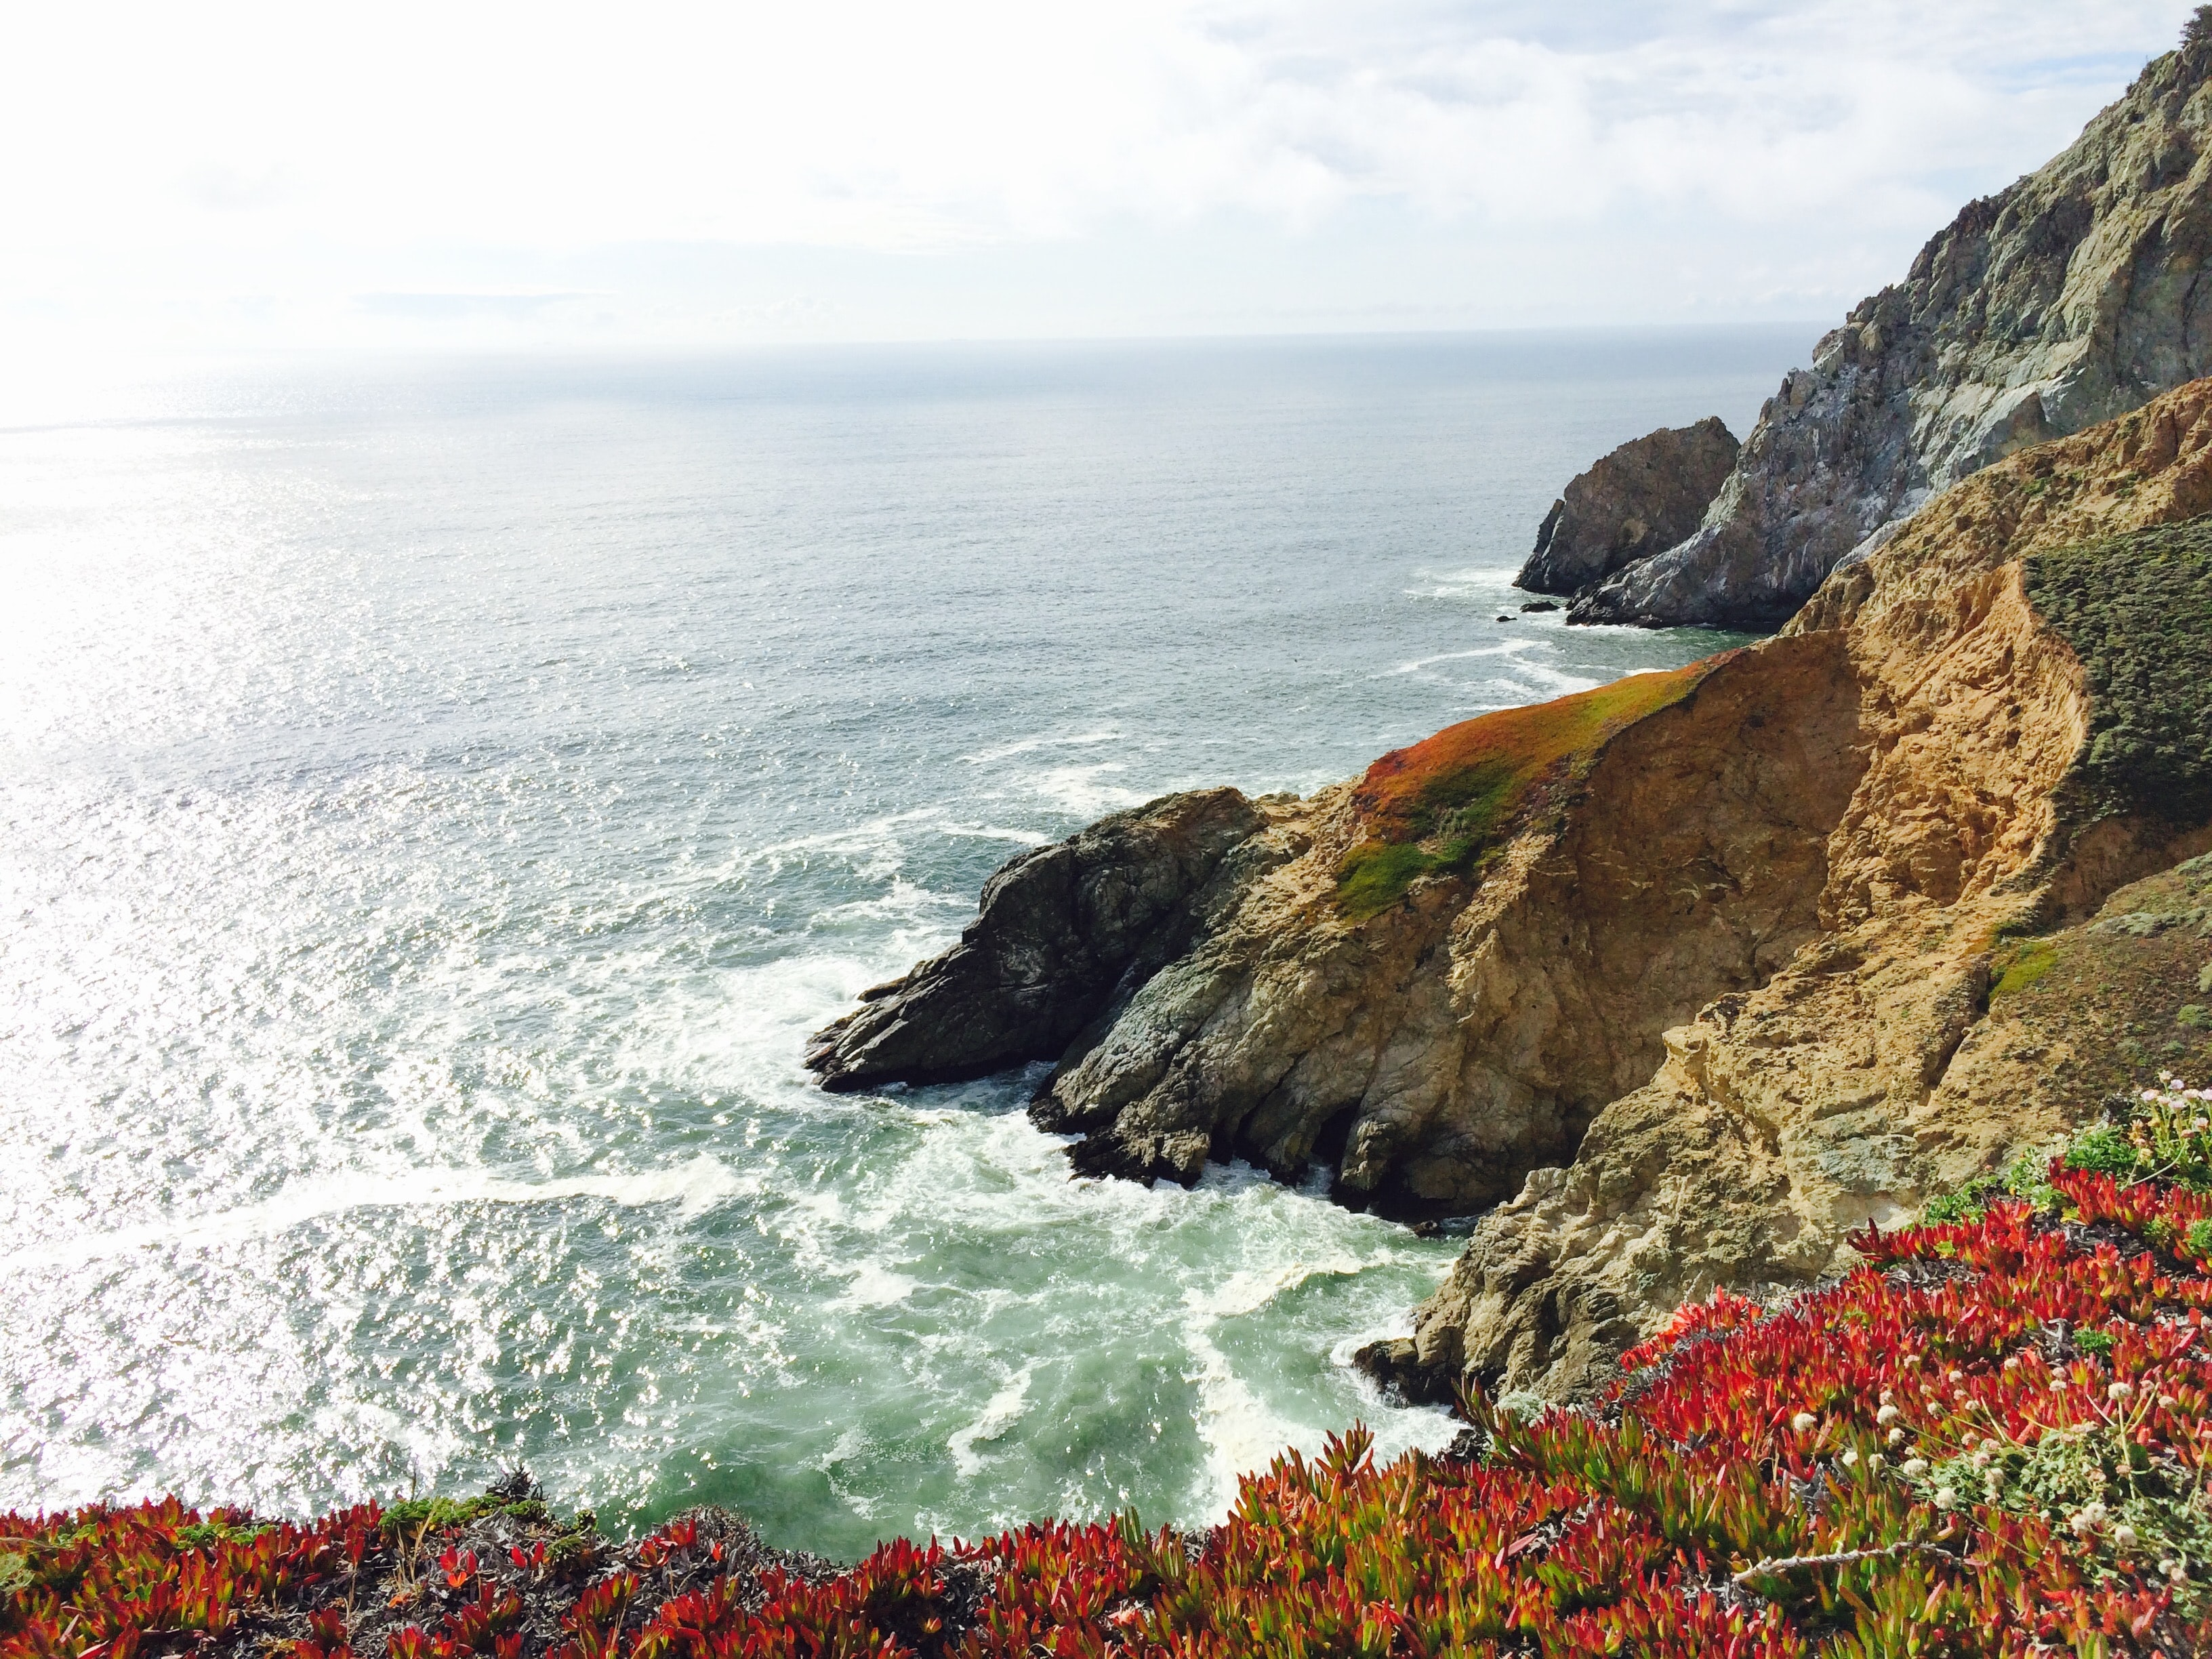 Cliff edge with flowers overlooking rocky ocean coastline at Devil's Slide